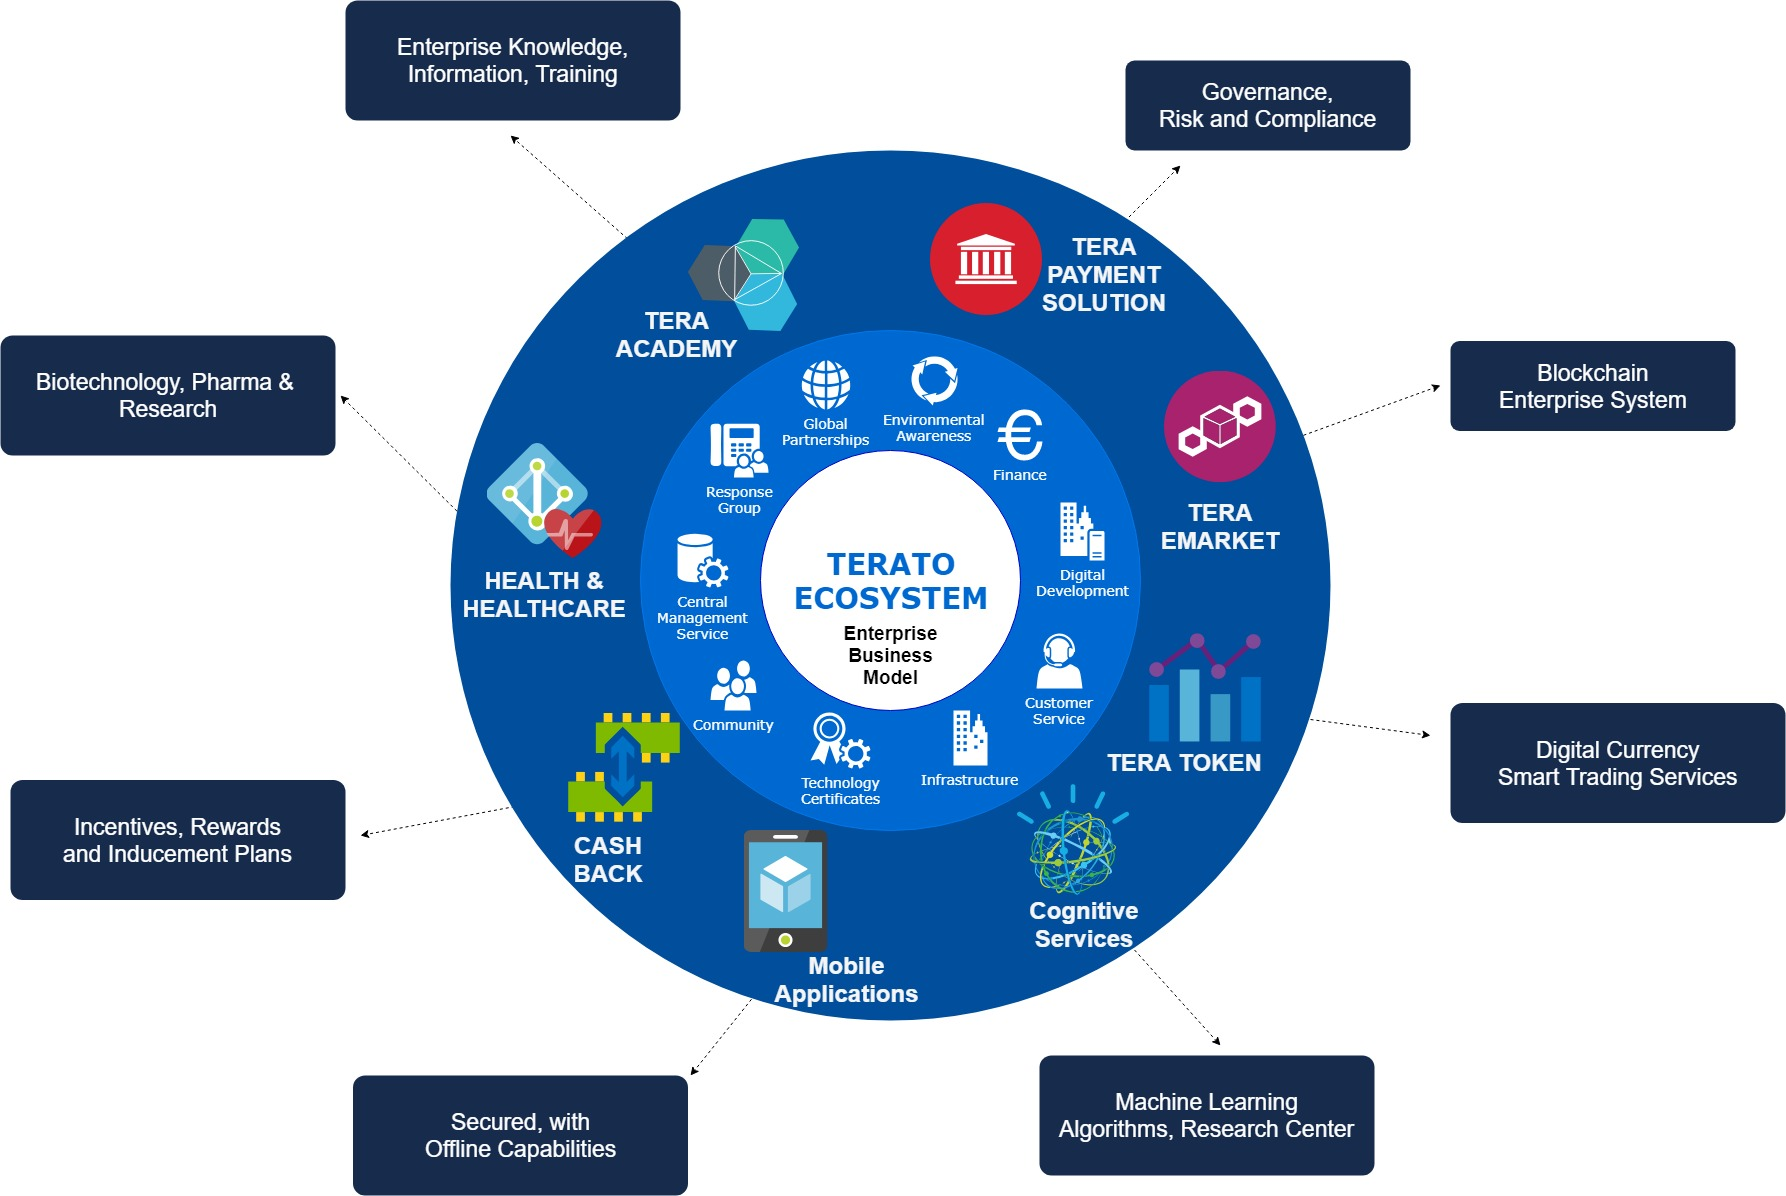 Terato Enterprise Business Model